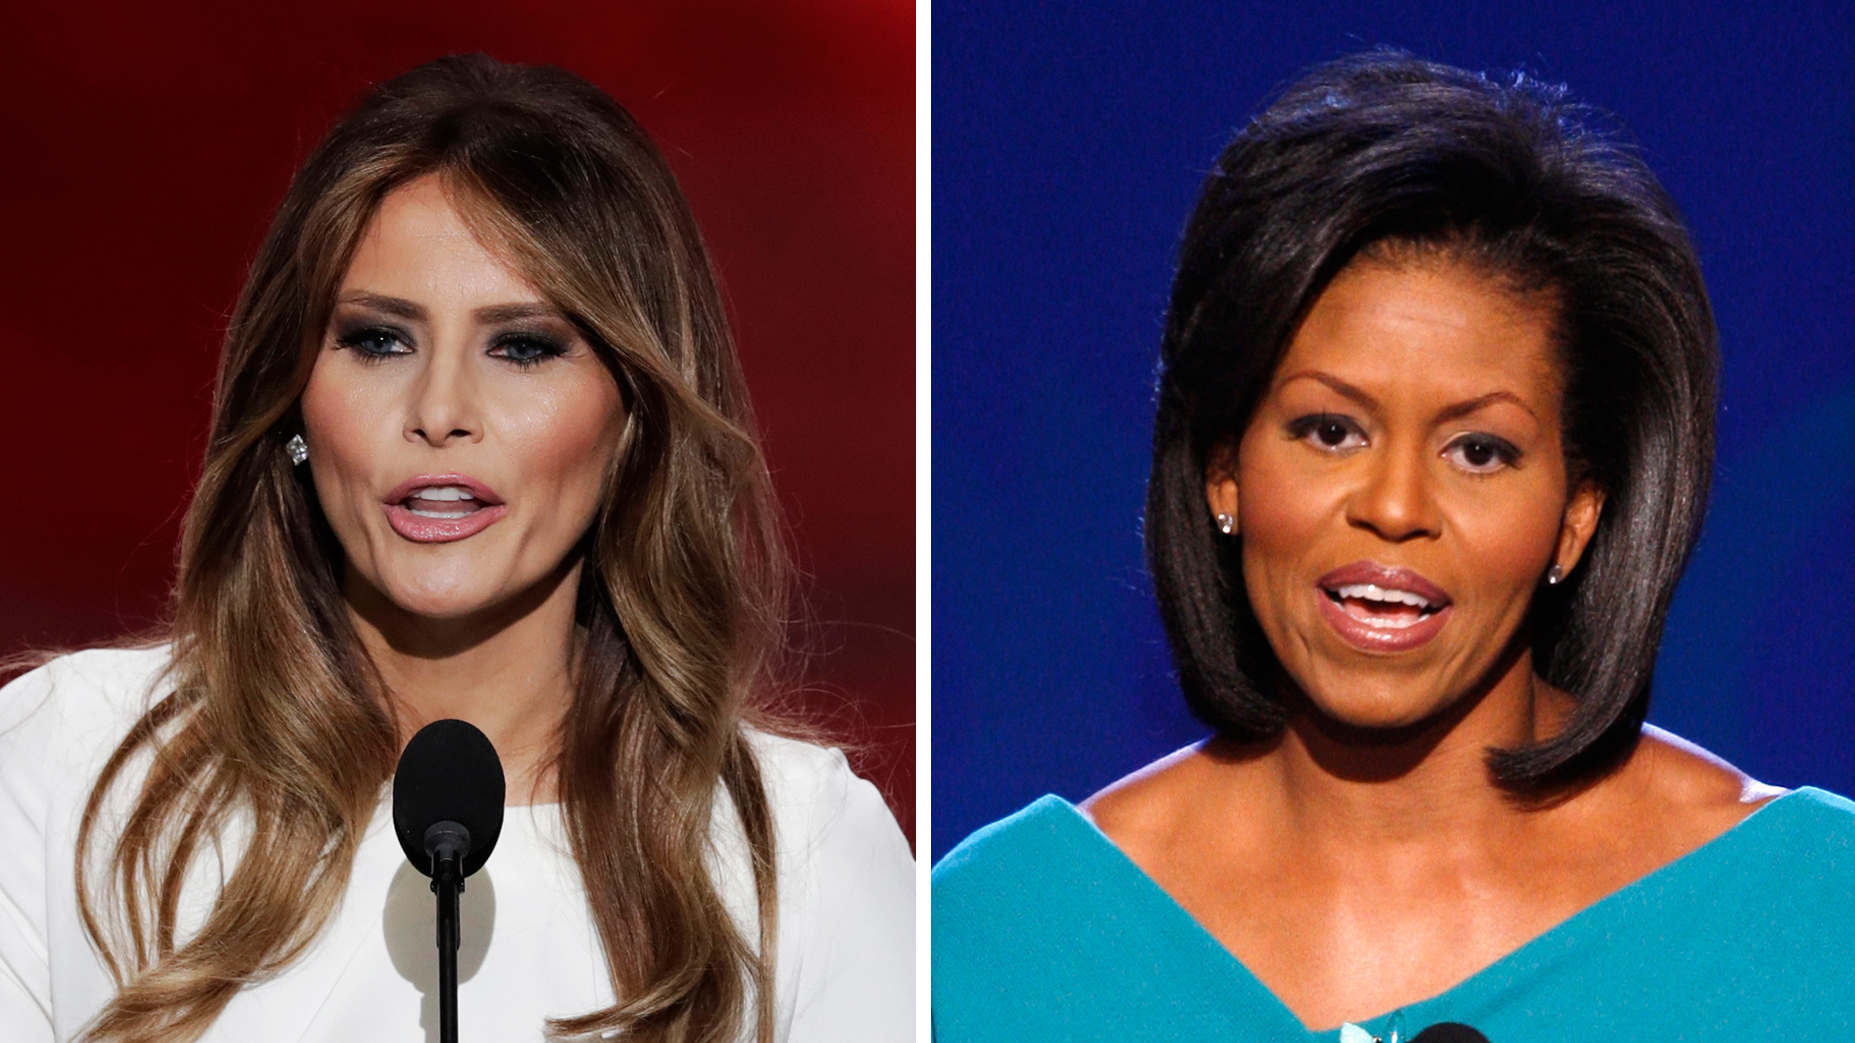 Trump Campaign Says Melania Trump's Words Were Her Own